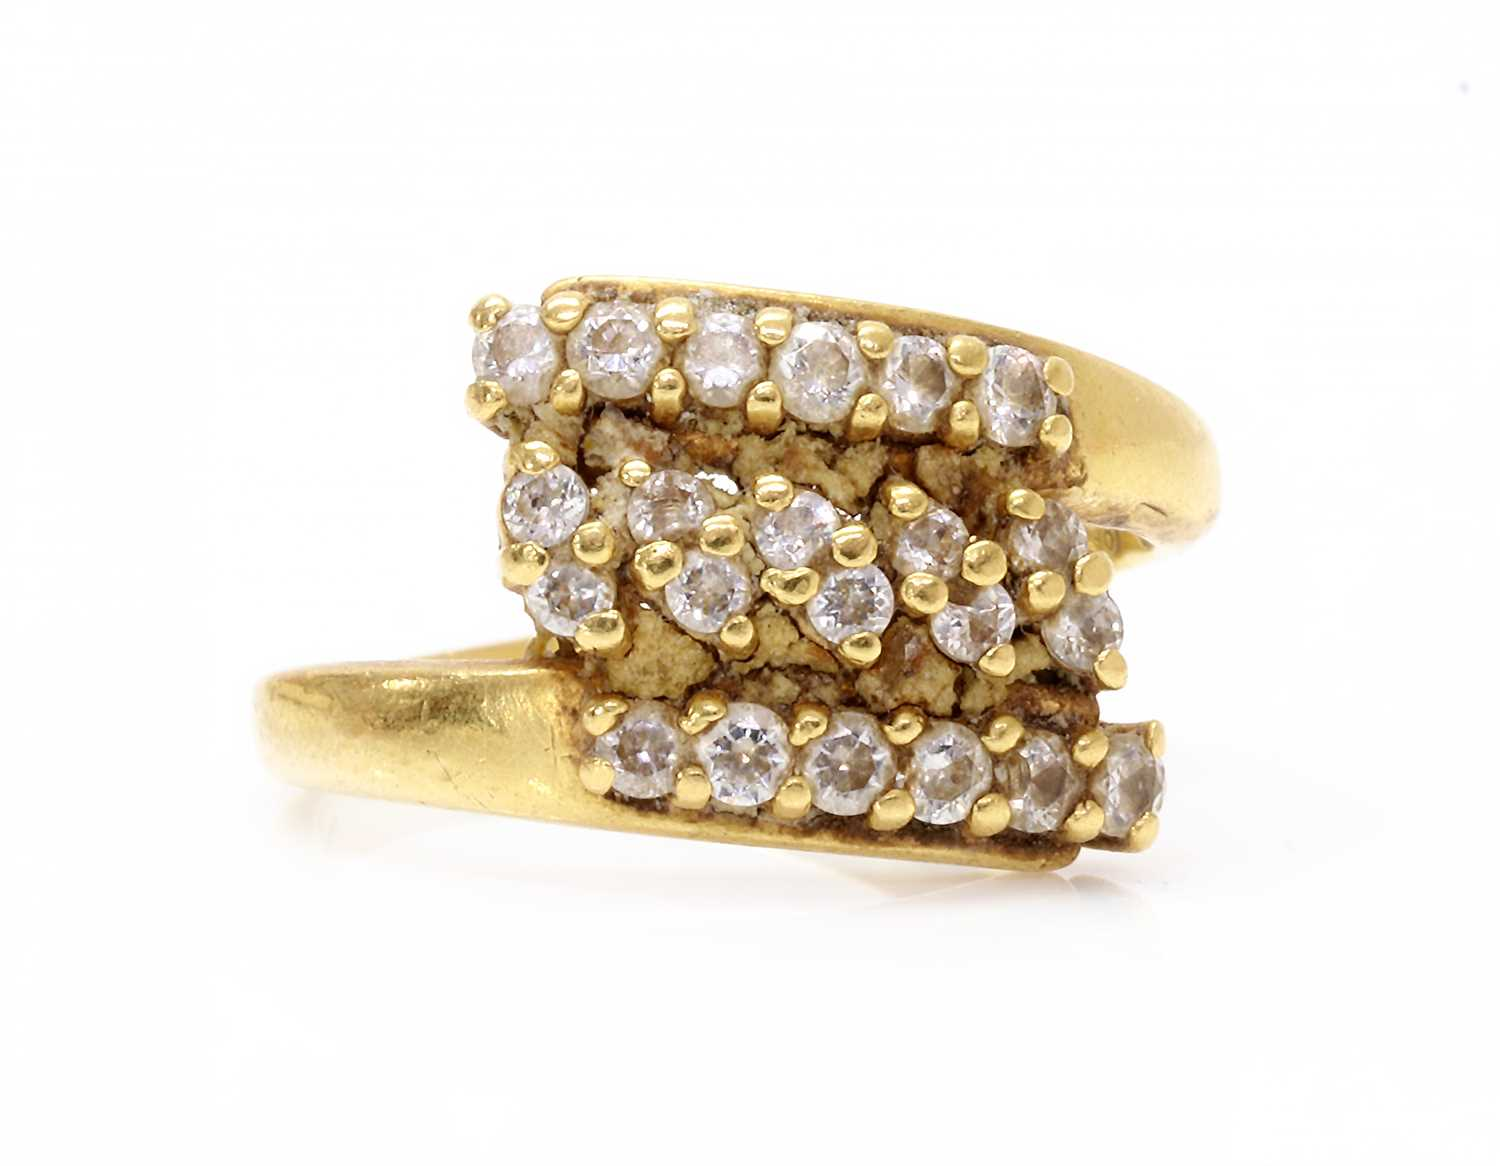 An Indian high carat gold cubic zirconia crossover ring, - Image 3 of 3